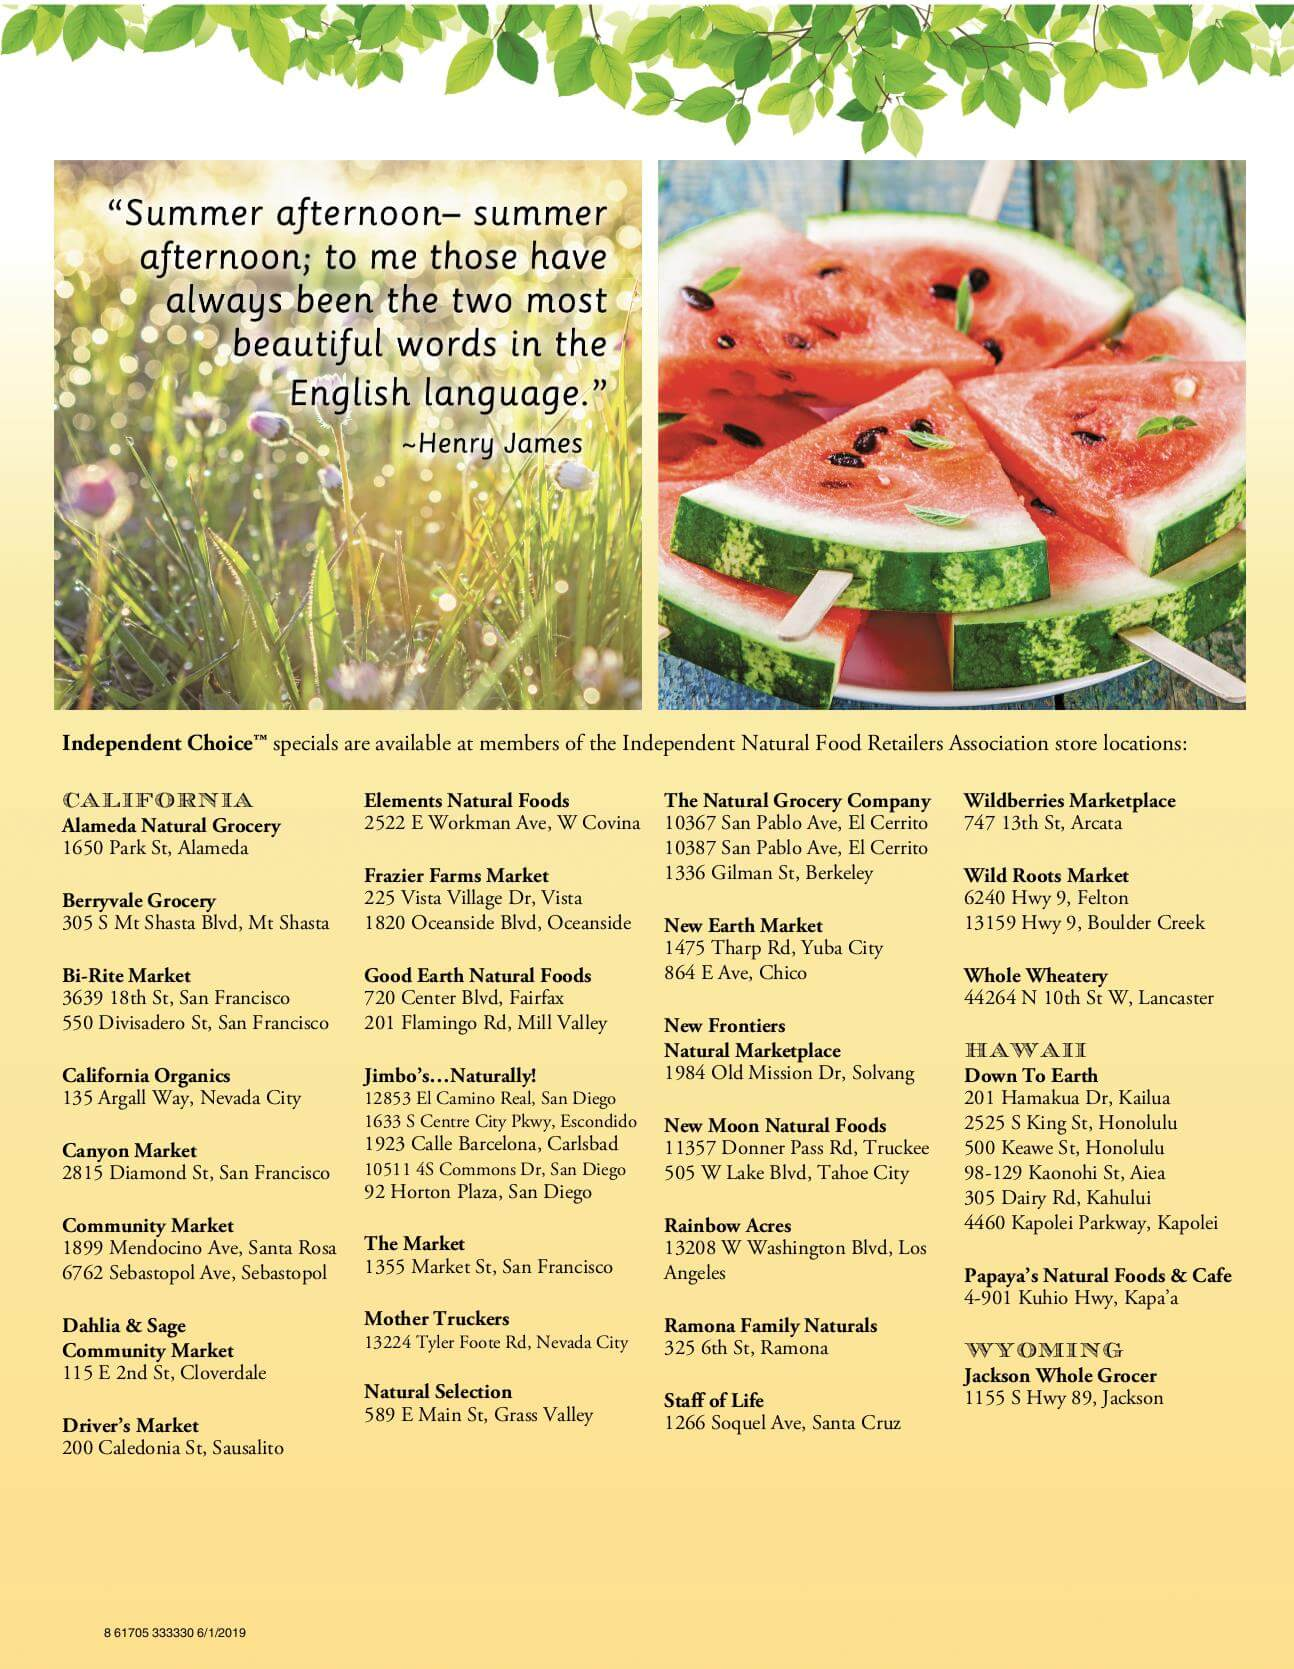 Ramona Family Naturals - monthly specials page 10